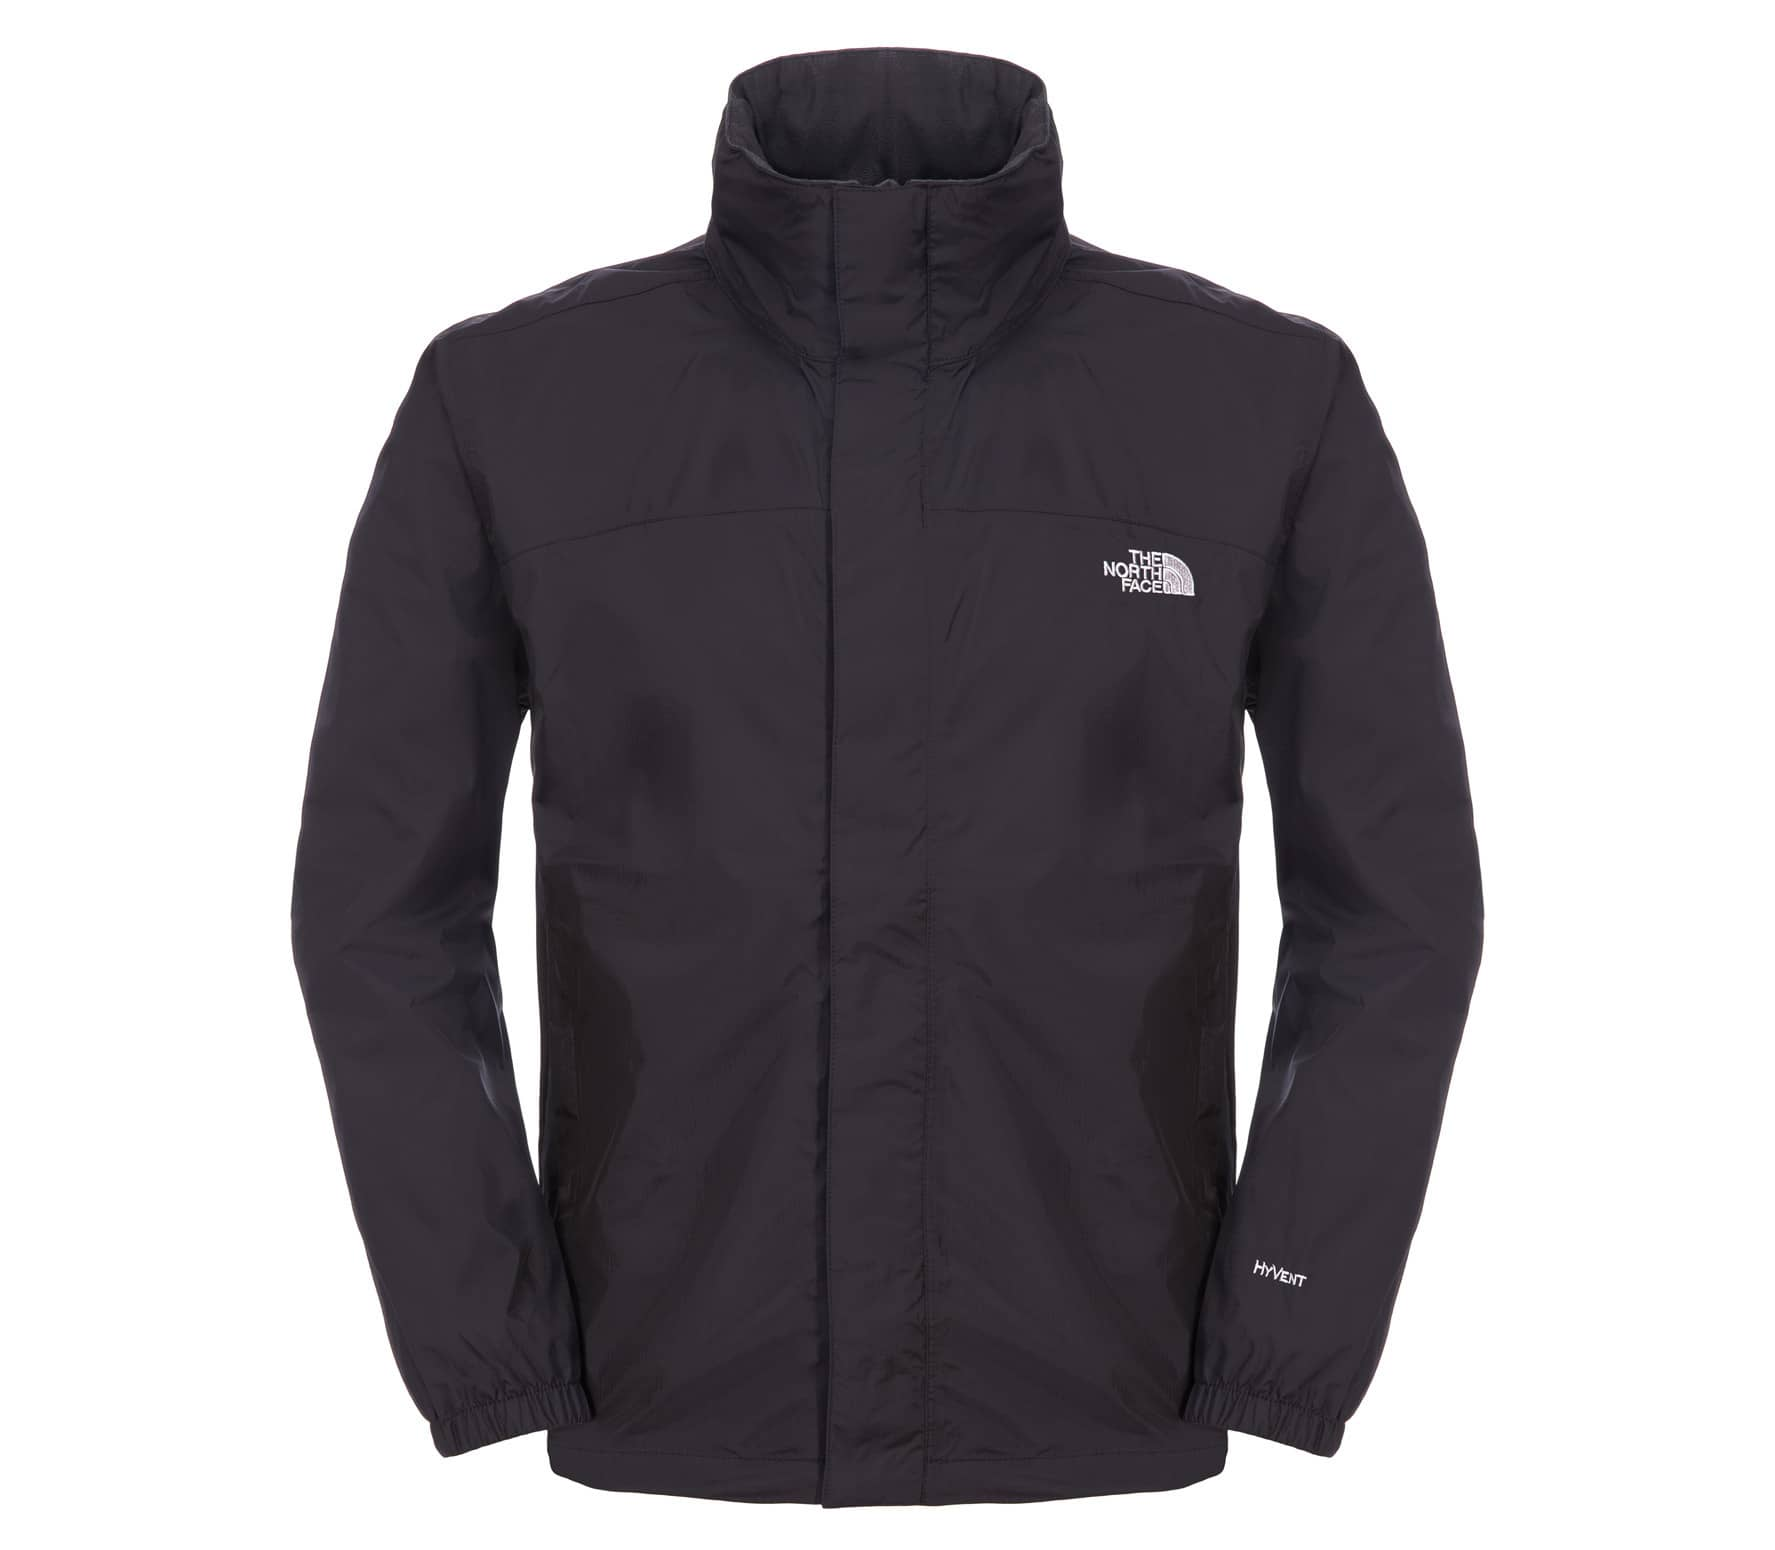 the north face resolve herren regenjacke schwarz im online shop von keller sports kaufen. Black Bedroom Furniture Sets. Home Design Ideas